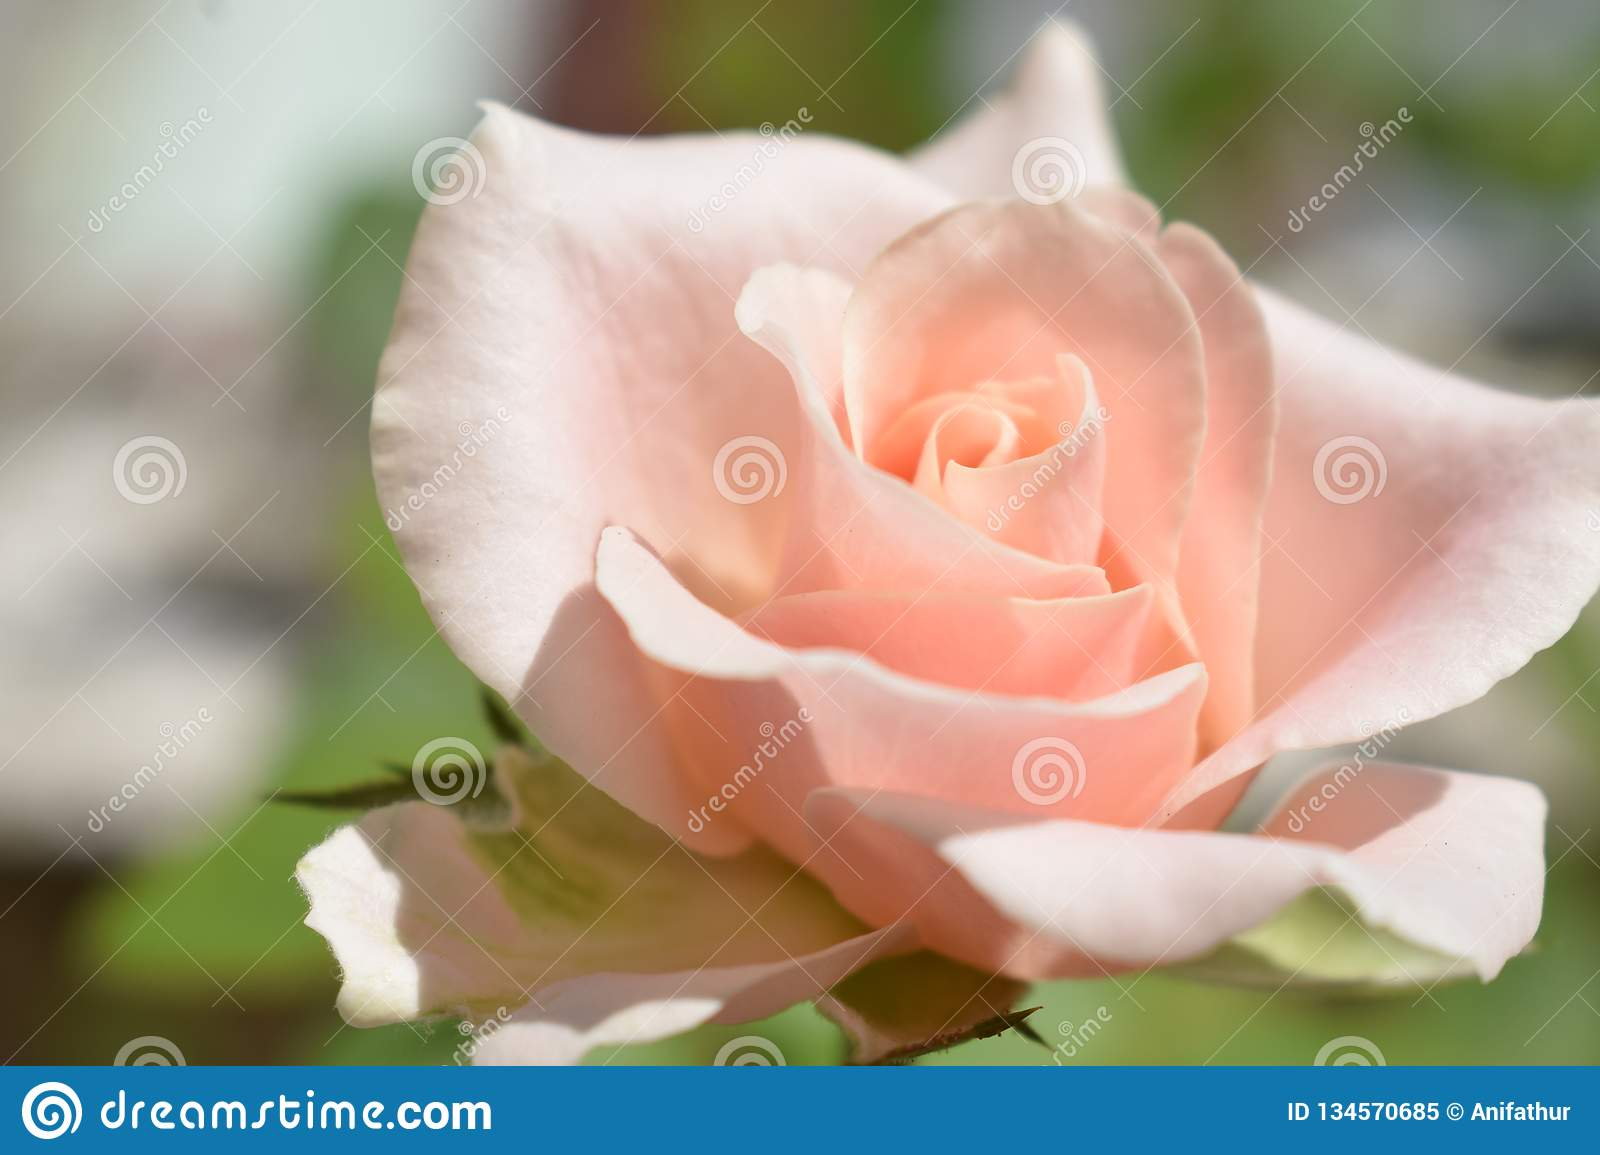 Rose Pink Rose Nature Flowers Blur Background Beauty Flowers Beautiful Nature Wallpaper Stock Image Image Of Beautiful Background 134570685